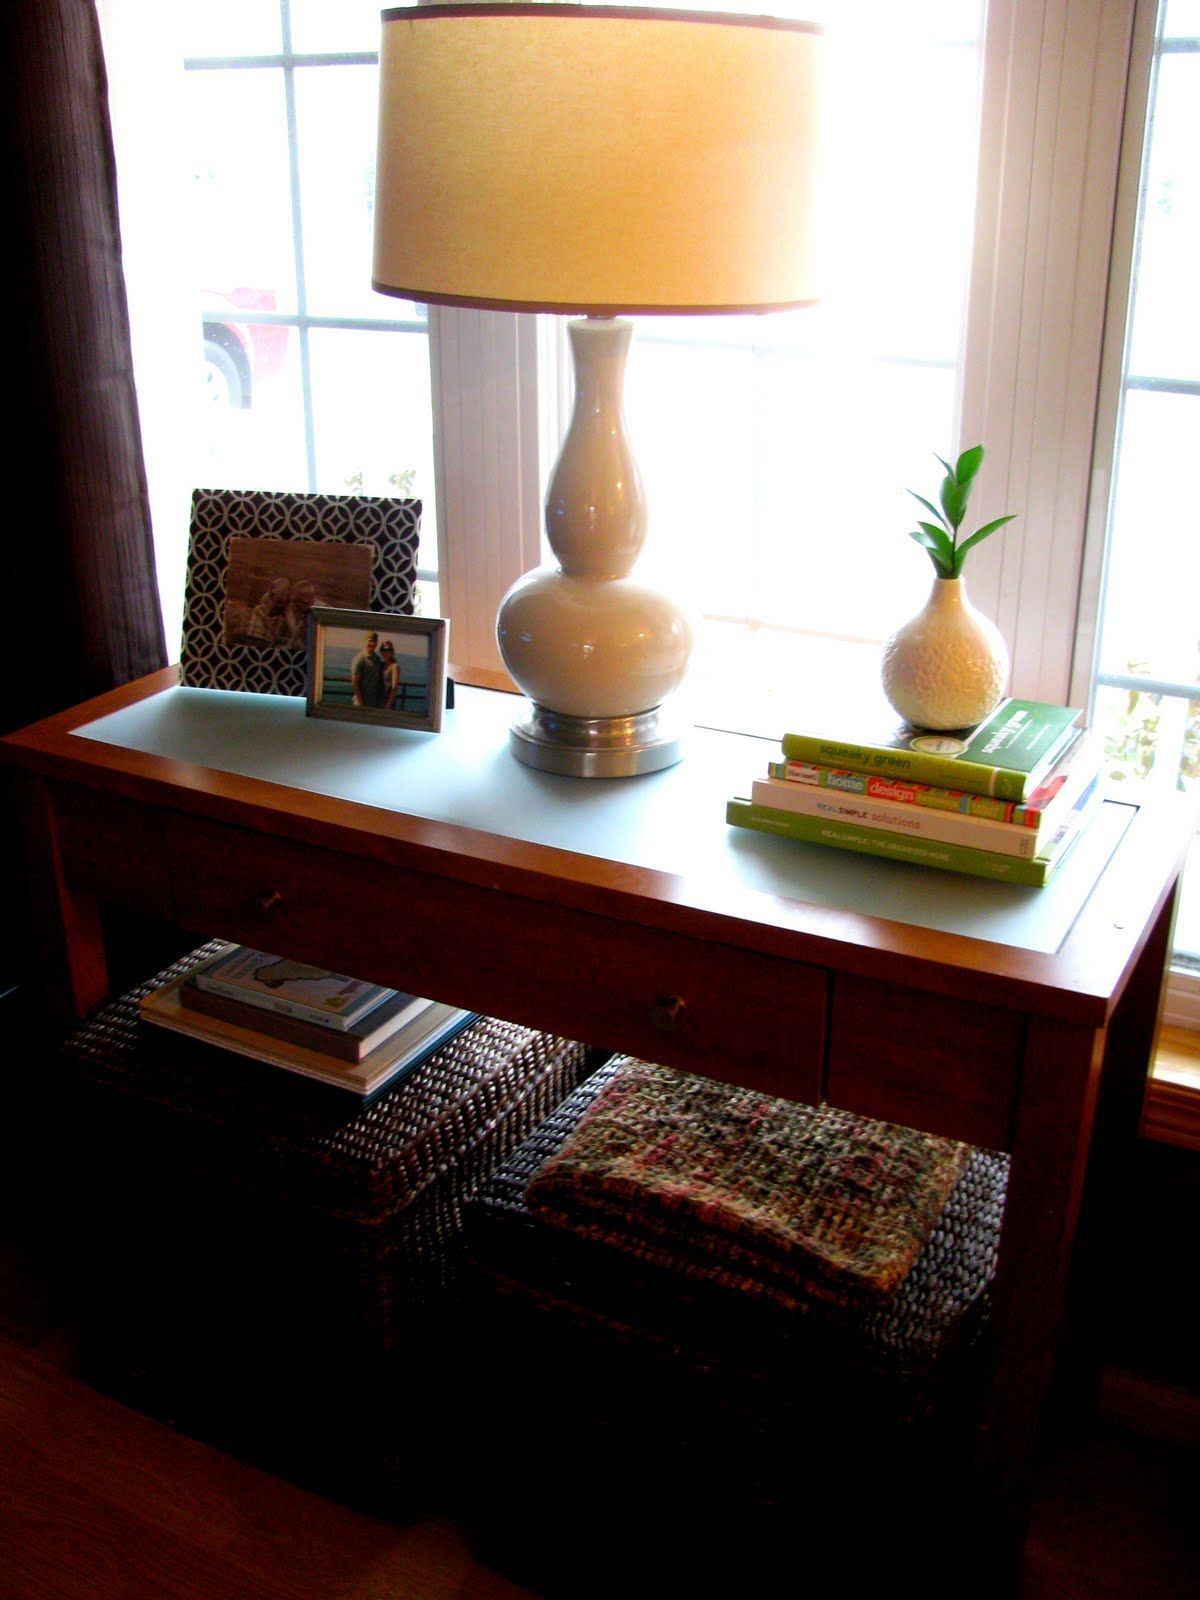 Iheart organizing april featured space living room tucked away